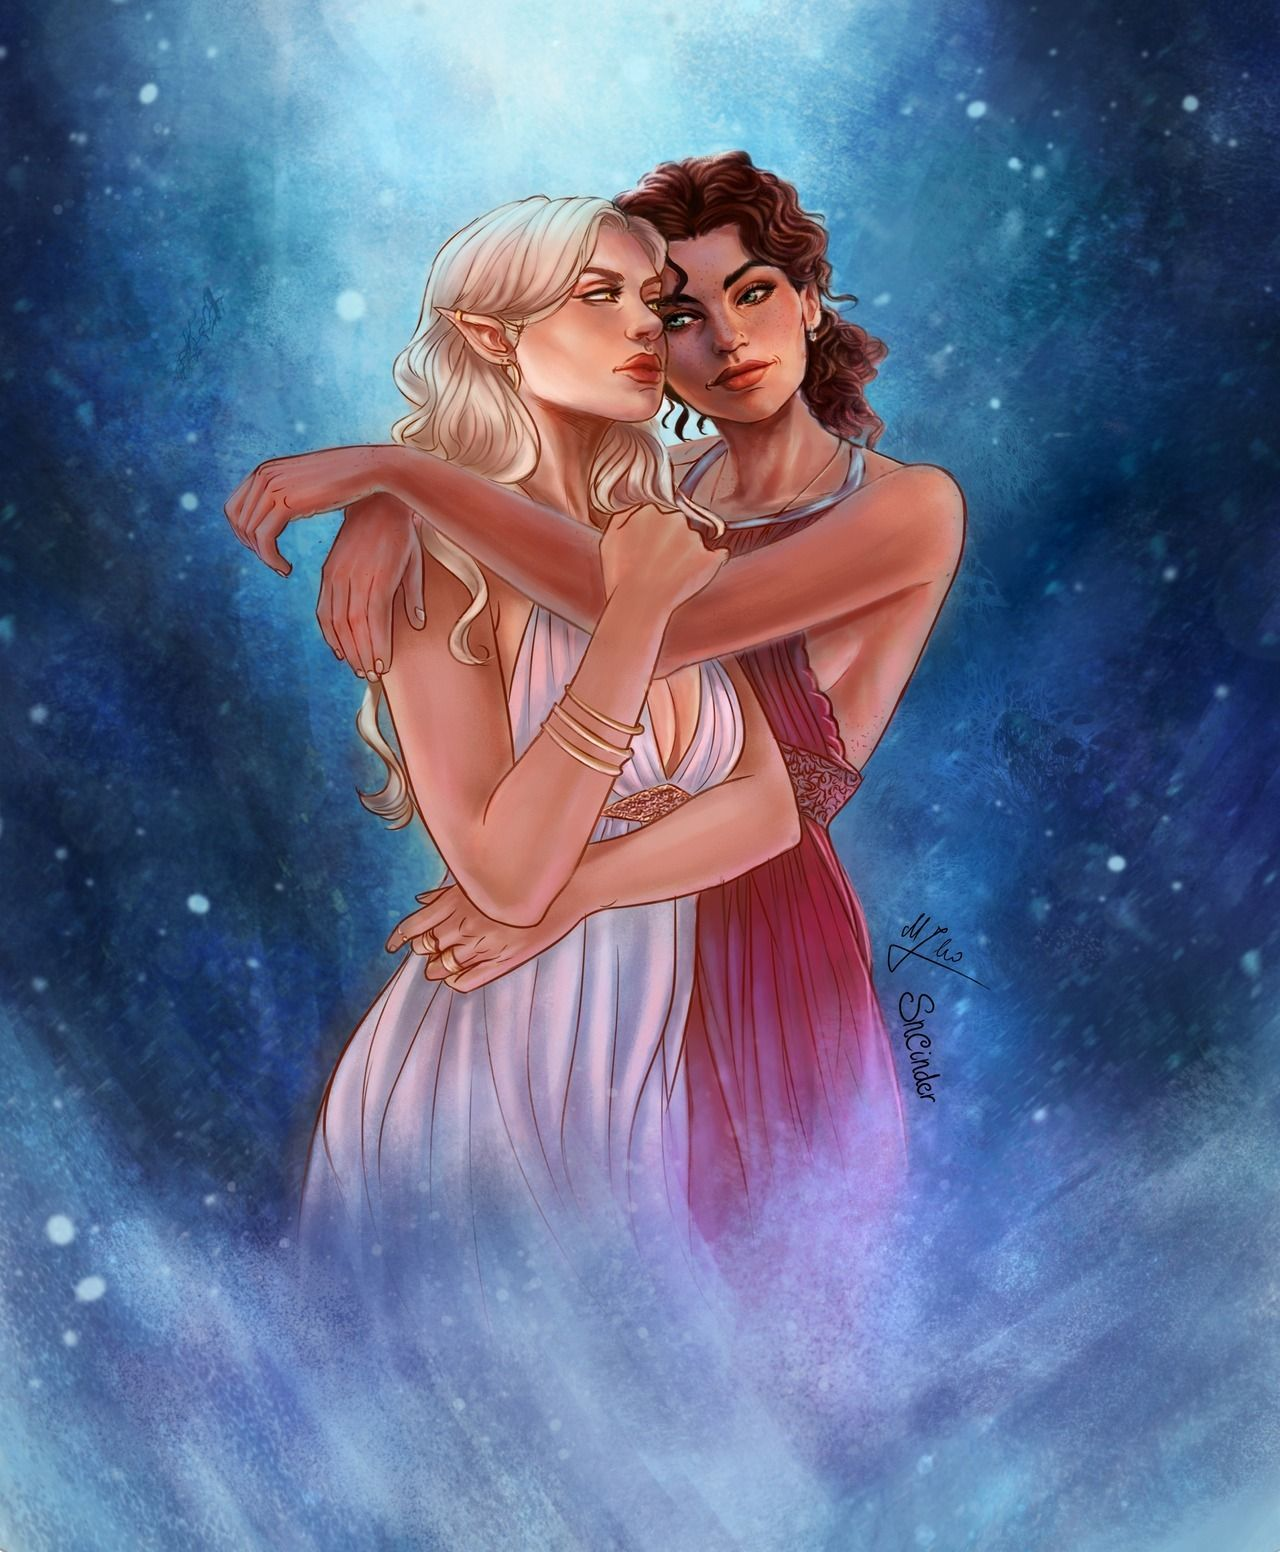 Pin By Ren Atomvl On A Court Of Thorns And Roses Sarah J Maas